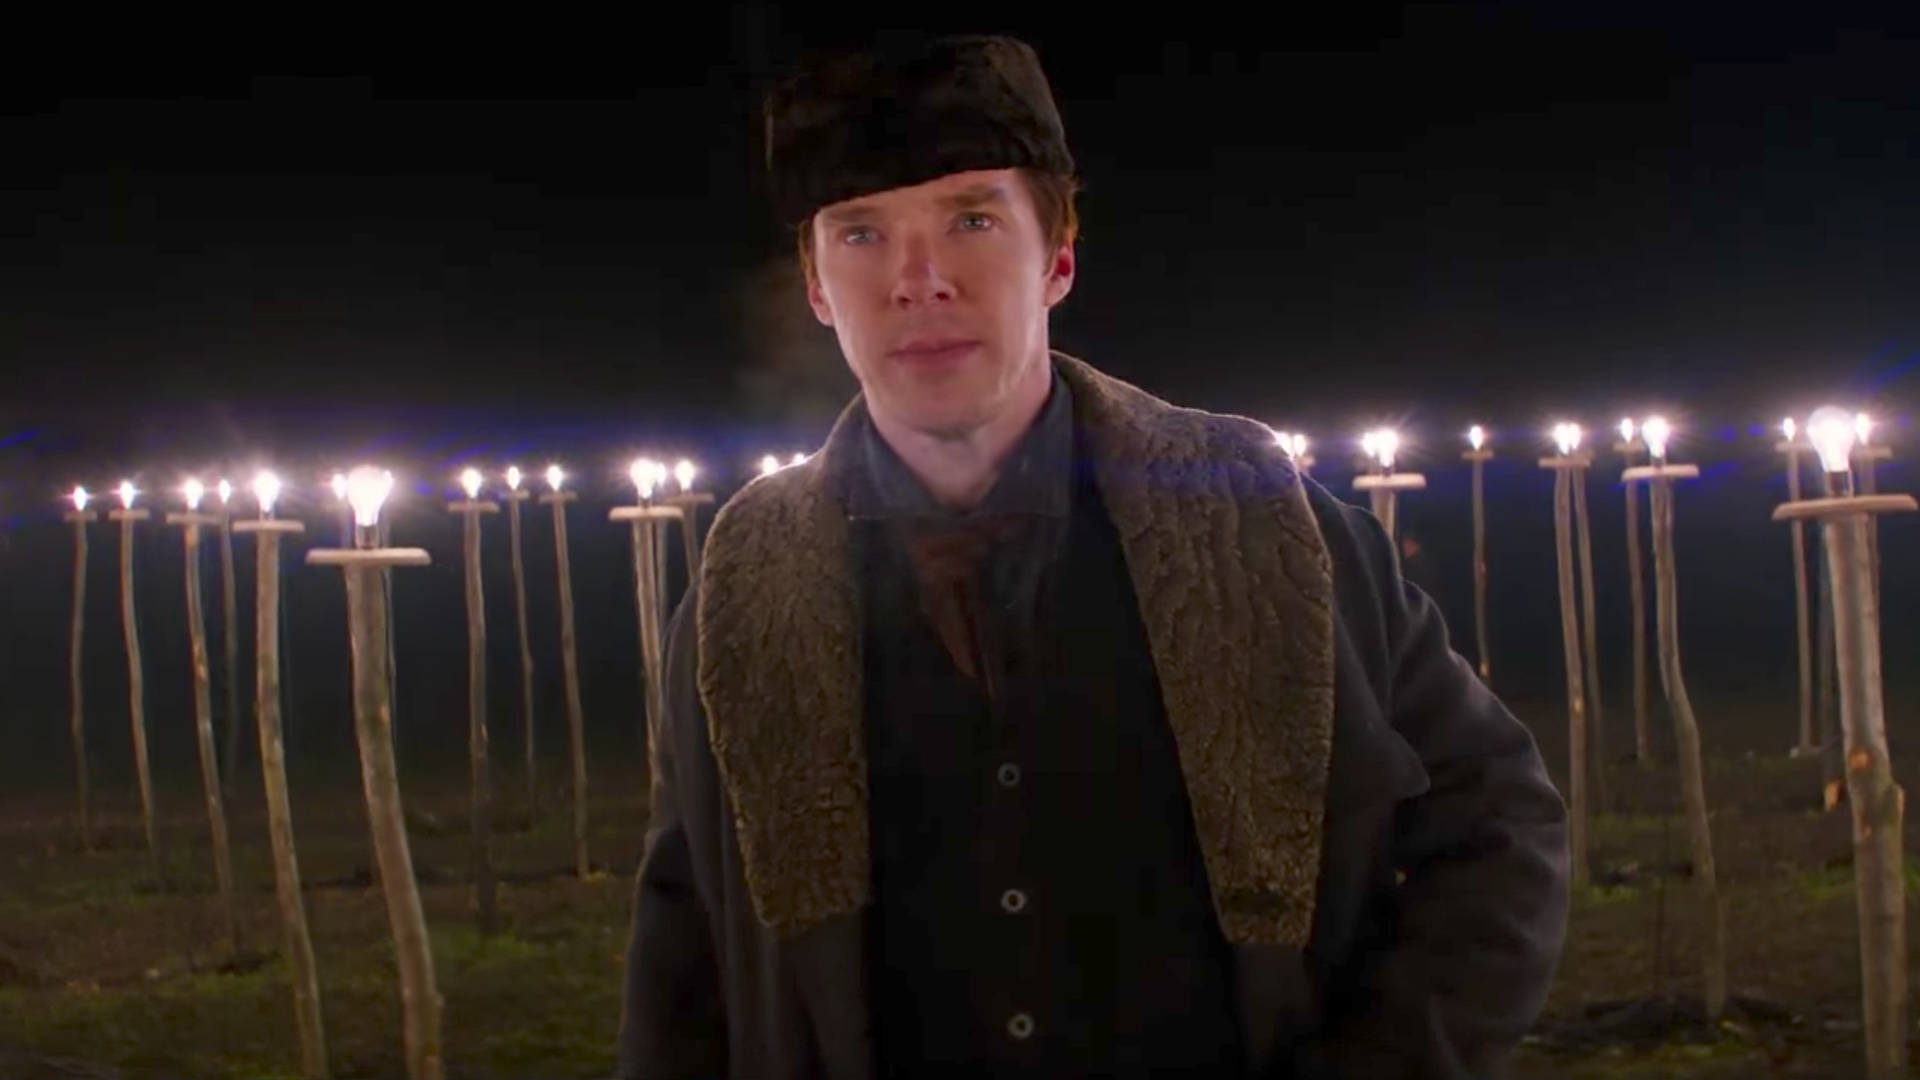 thomas-edison-vs-george-westinghouse-in-trailer-for-the-current-war-with-benedict-cumberbatch-and-michael-shannon-social.jpg